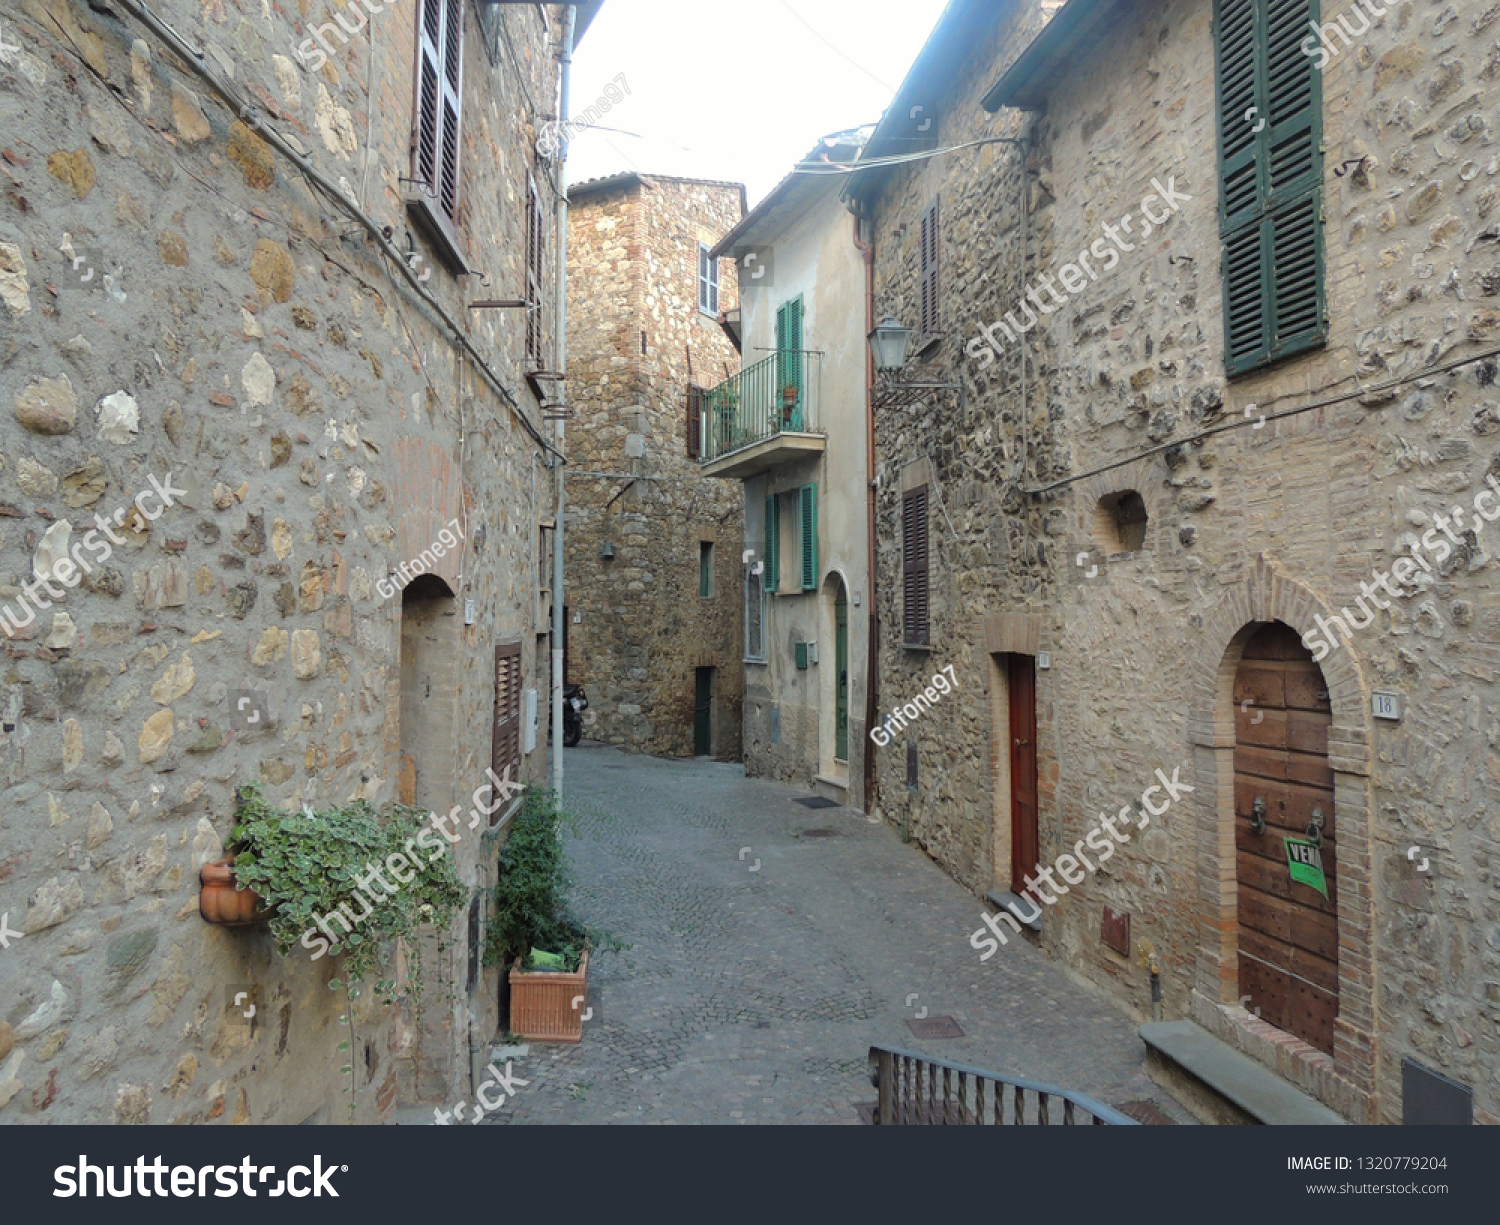 Medieval alley of Allerona, one of the most beautiful villages in Italy.